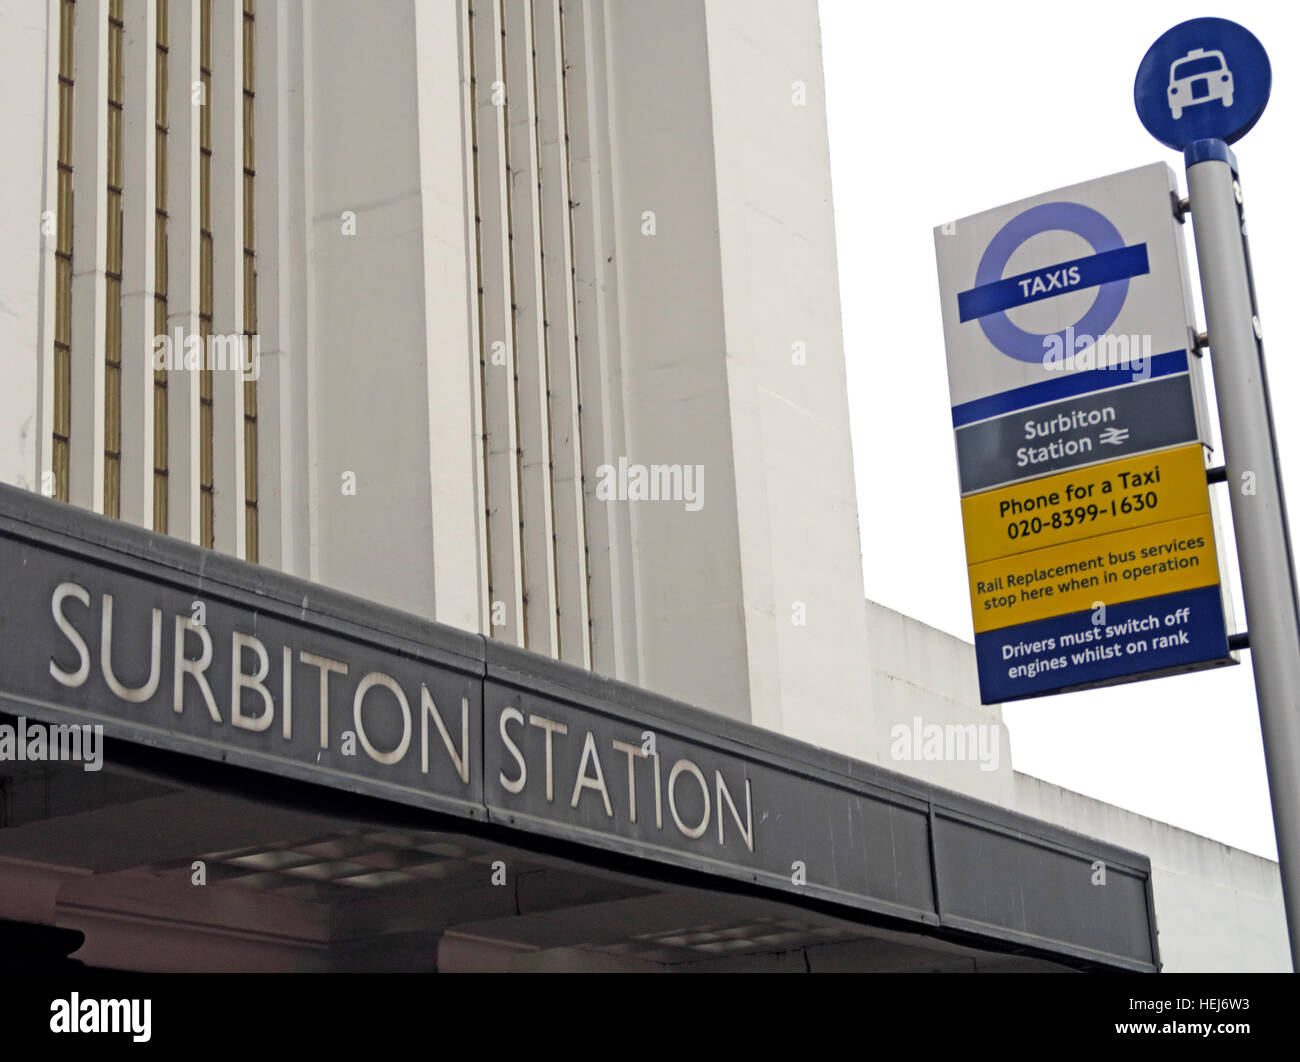 Surbiton Railway Station,SW Trains, West London, England,UK and bus transport links - Stock Image